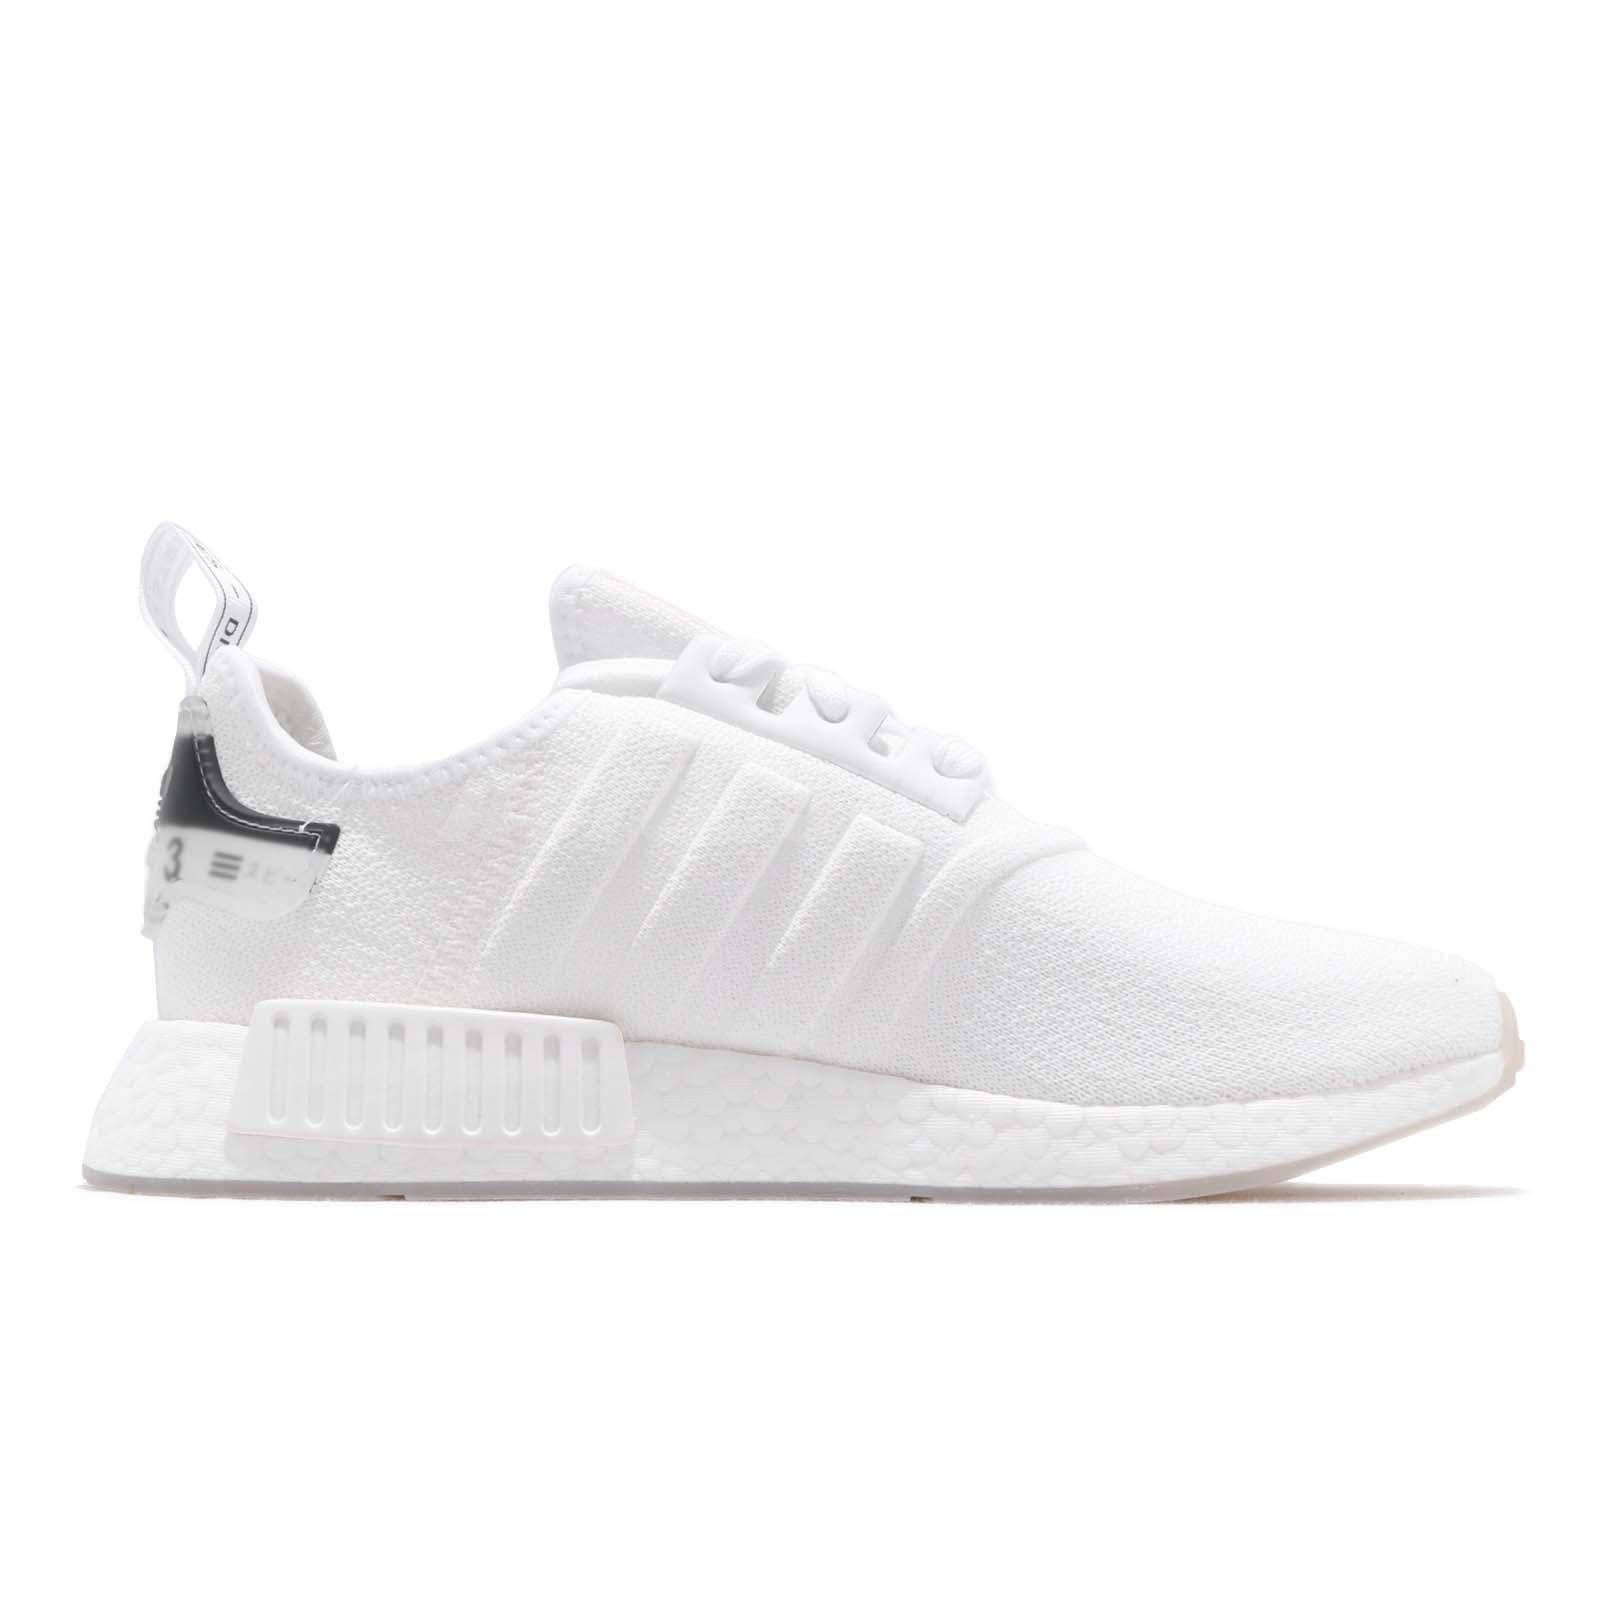 adidas Originals NMD R1 Boost White Black Men Running Shoes Sneakers ... 2e117d85a